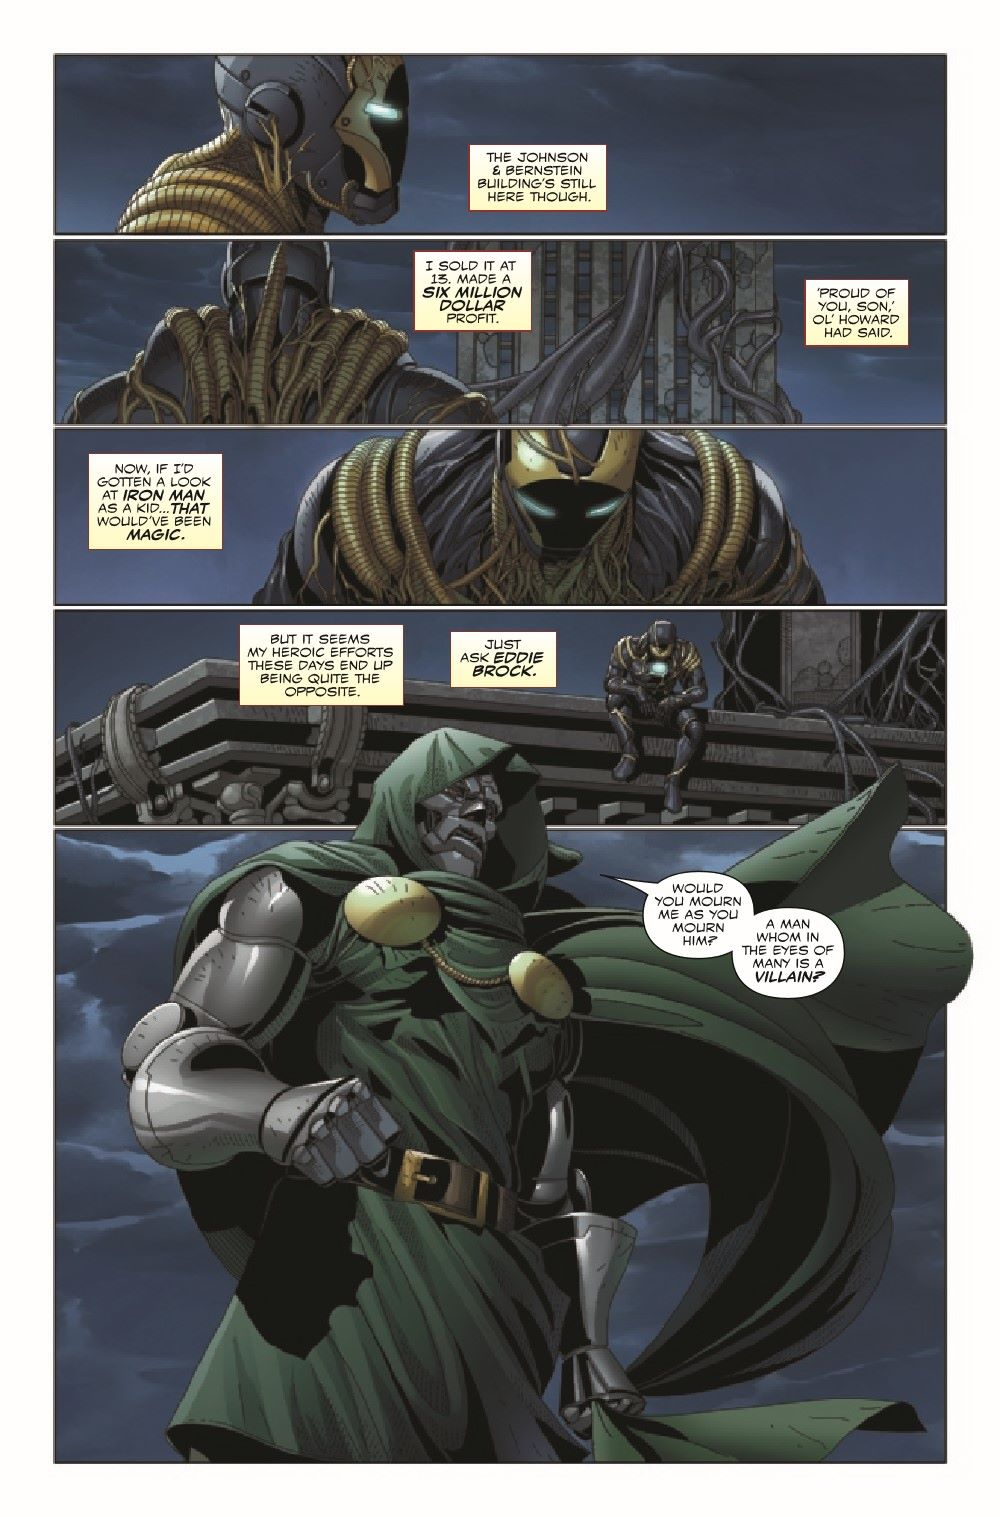 IMKIB2020001_Preview-5 ComicList Previews: KING IN BLACK IRON MAN DOCTOR DOOM #1